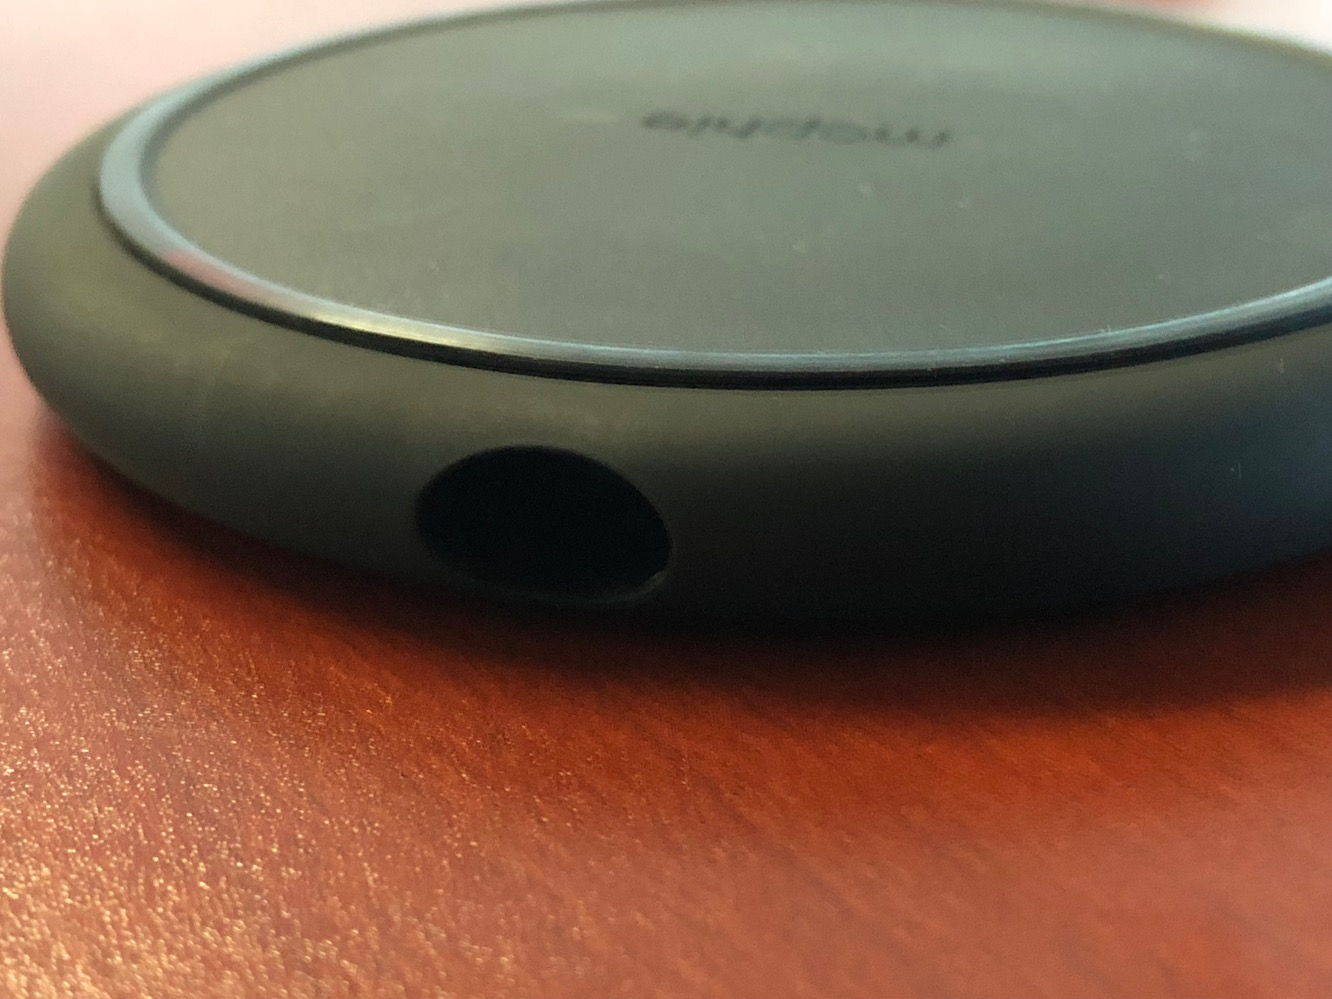 Review: iClever Apple Watch Charging Stand